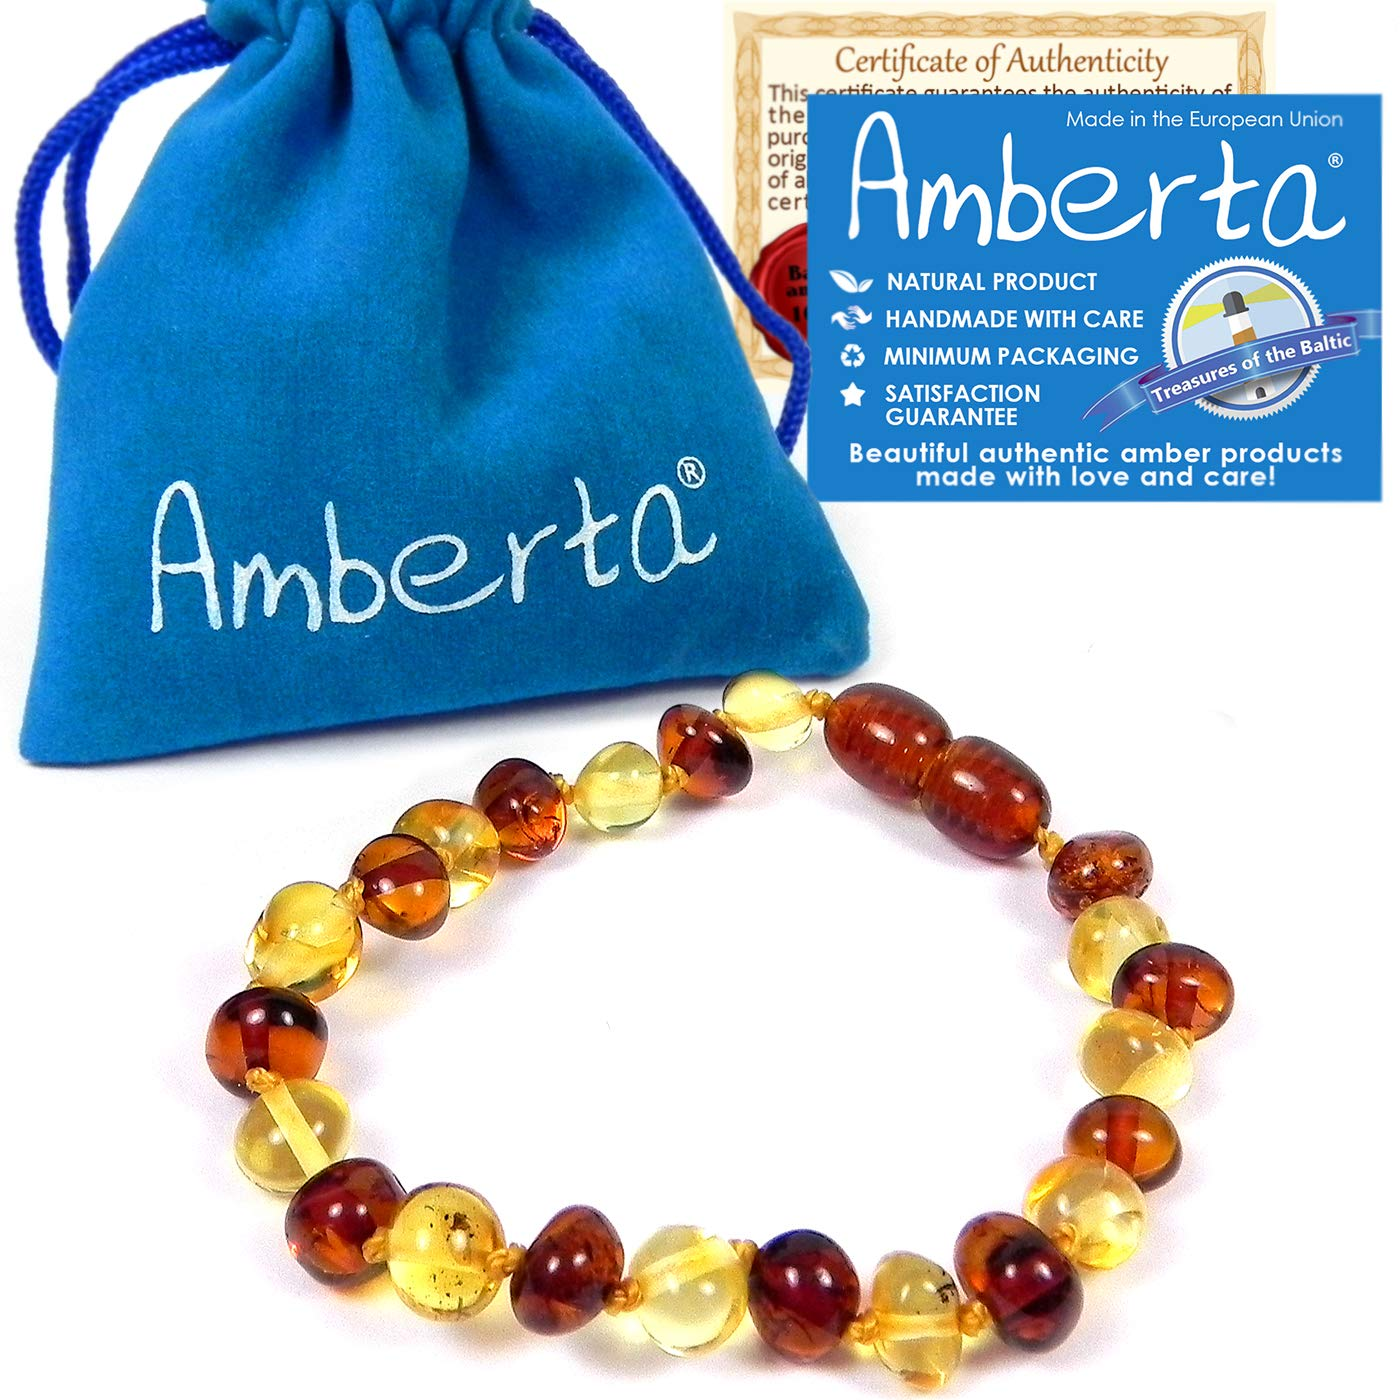 Amber Teething Anklet or Bracelet for Babies Amberta - 5.5 OR 6.3 inches, Anti Inflammatory, Teething Discomfort & Drooling Relief, Natural Soothing Effect - 100% Pure Amber, Handmade by Amberta